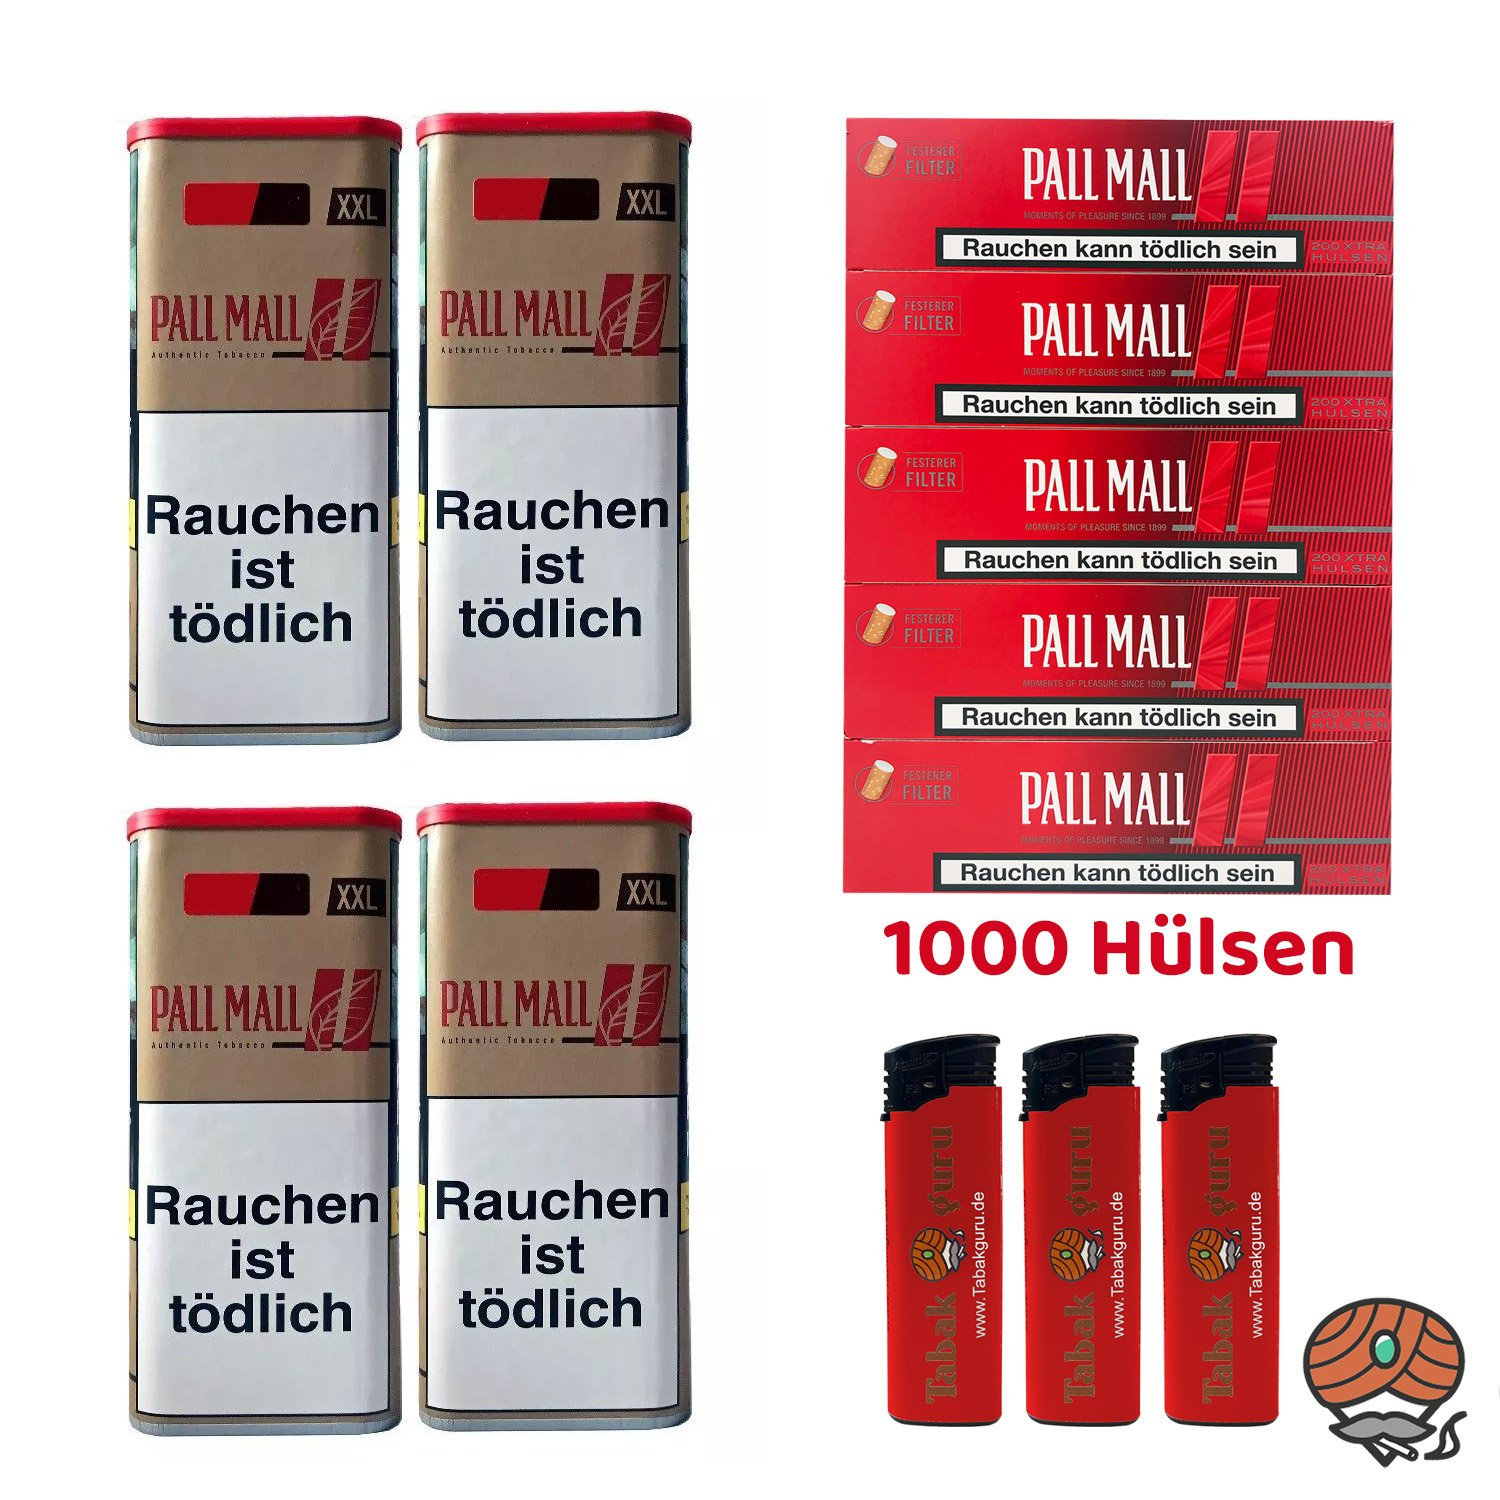 4x Pall Mall Authentic Red/Rot Tabak á 105 g, Pall Mall Xtra Hülsen, Feuerzeuge